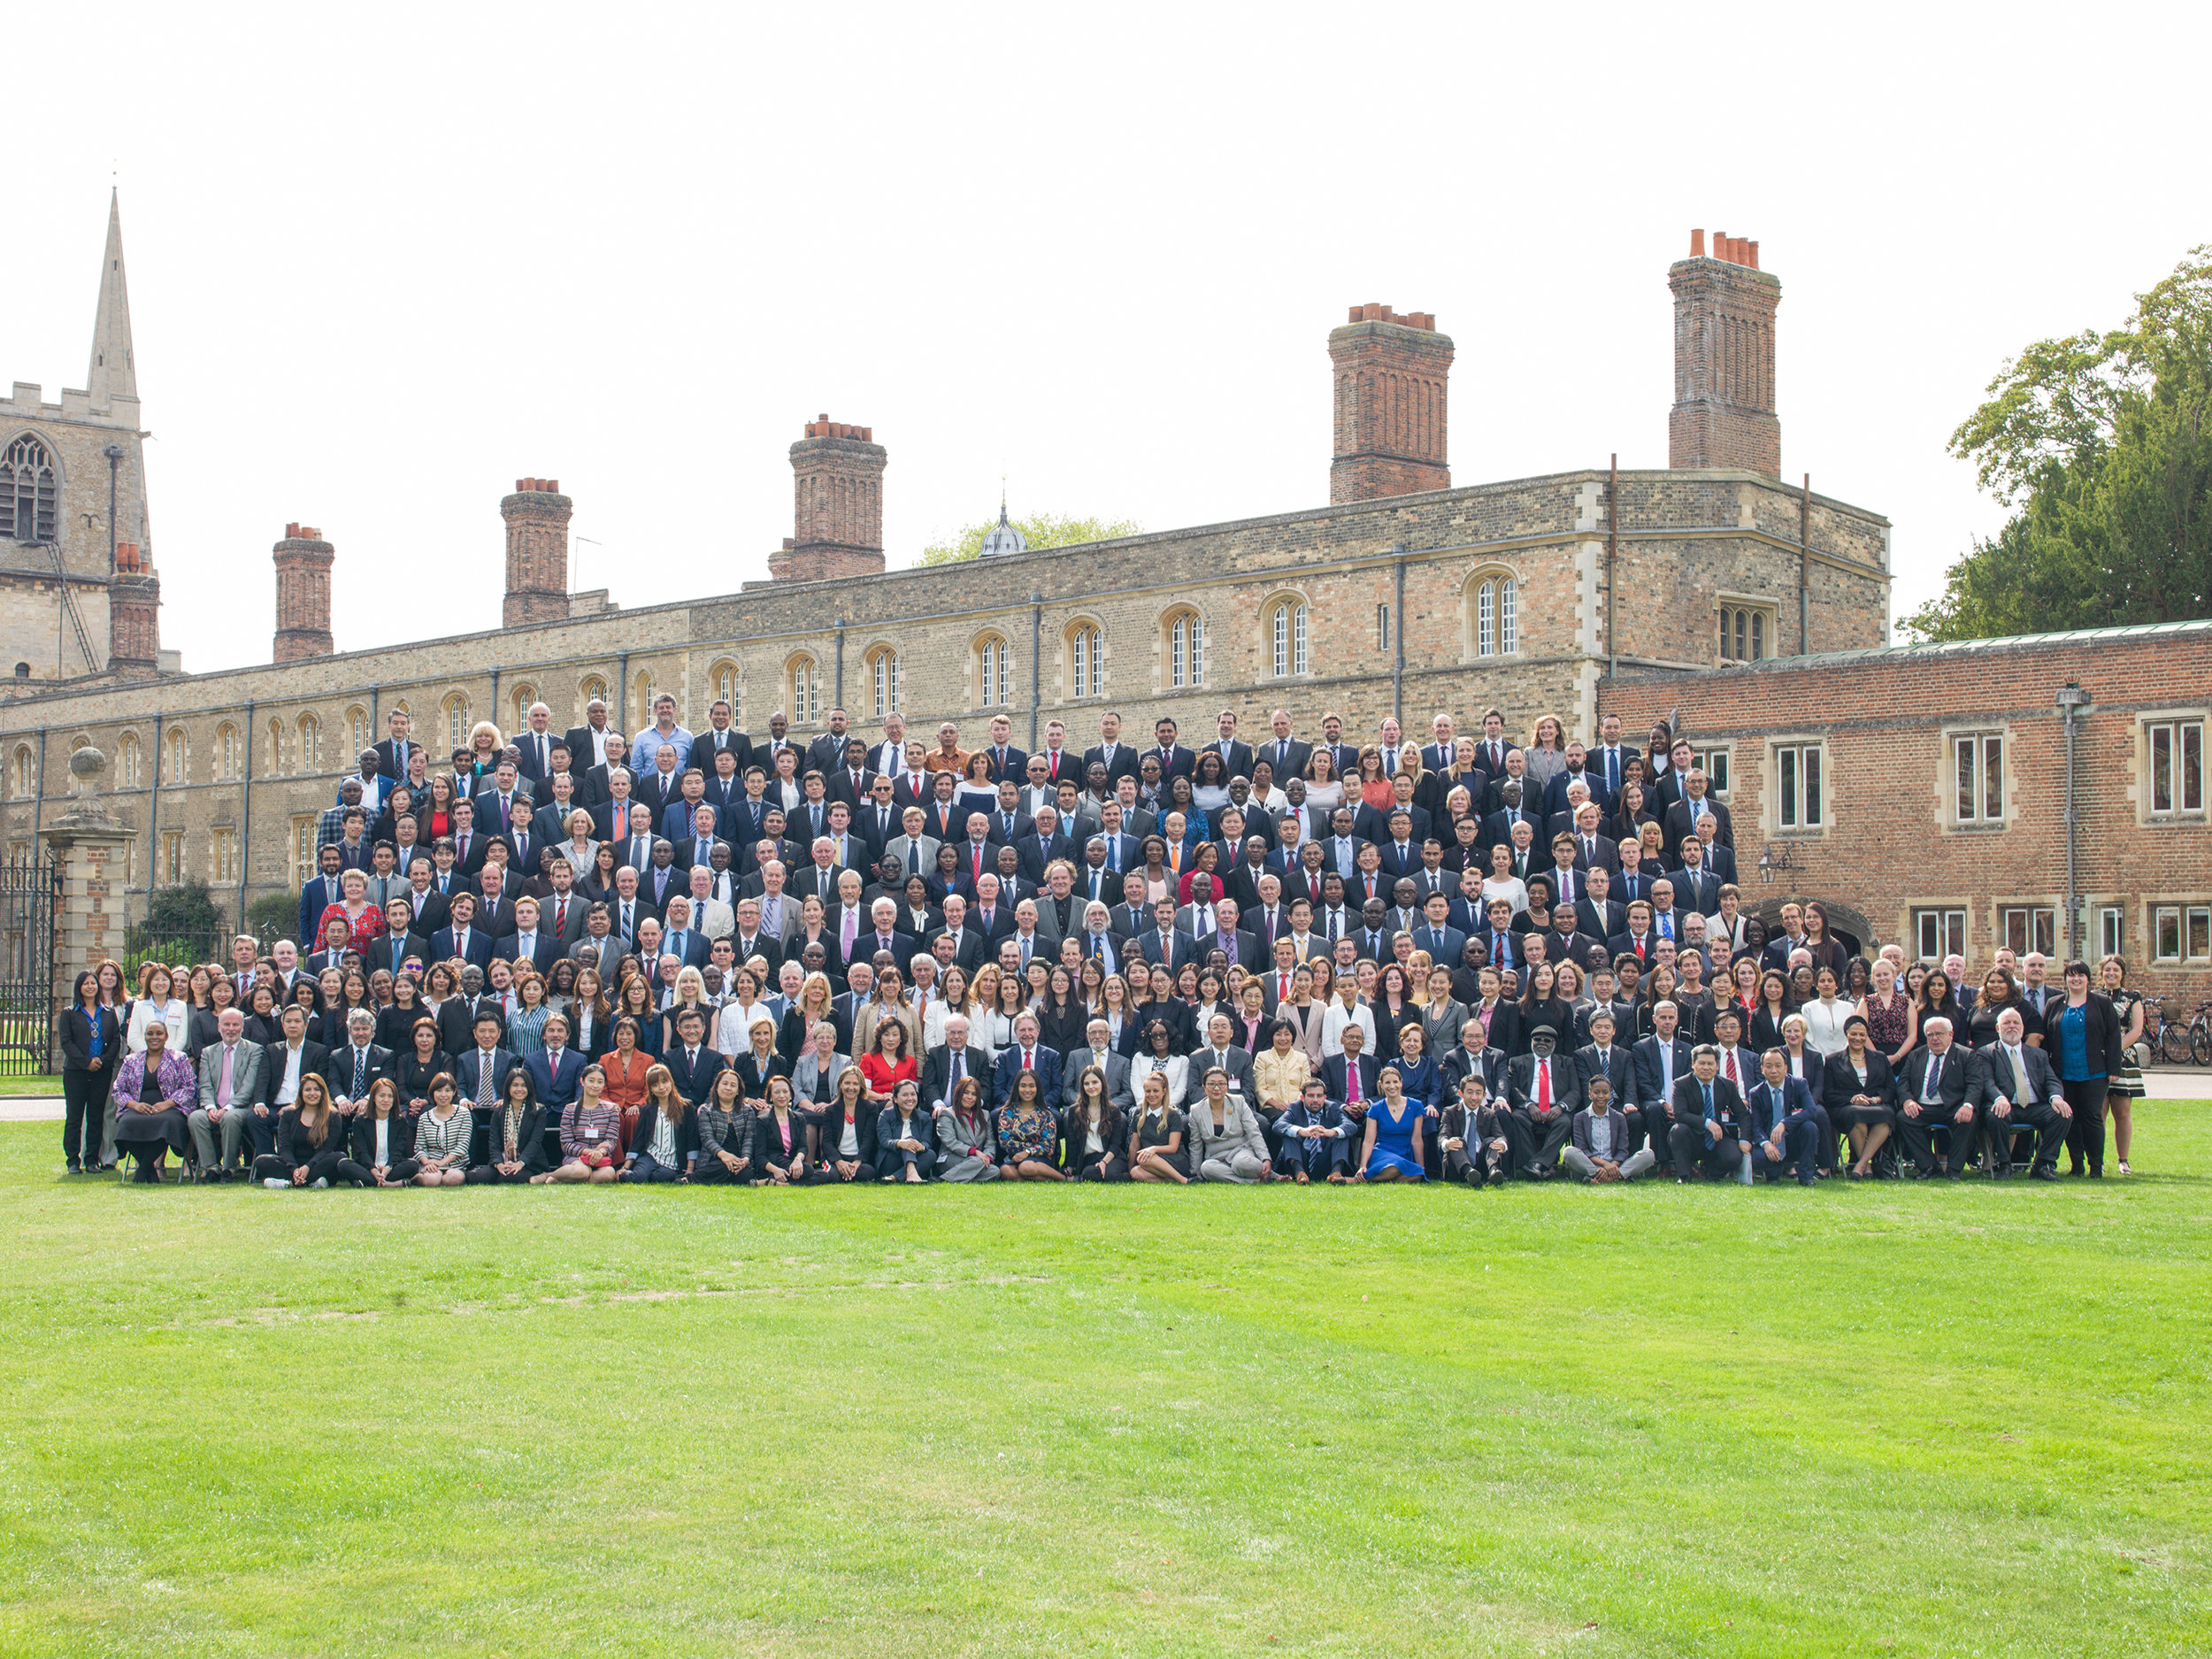 The 2018 Cambridge International Symposium on Economic Crime (first day's participants)